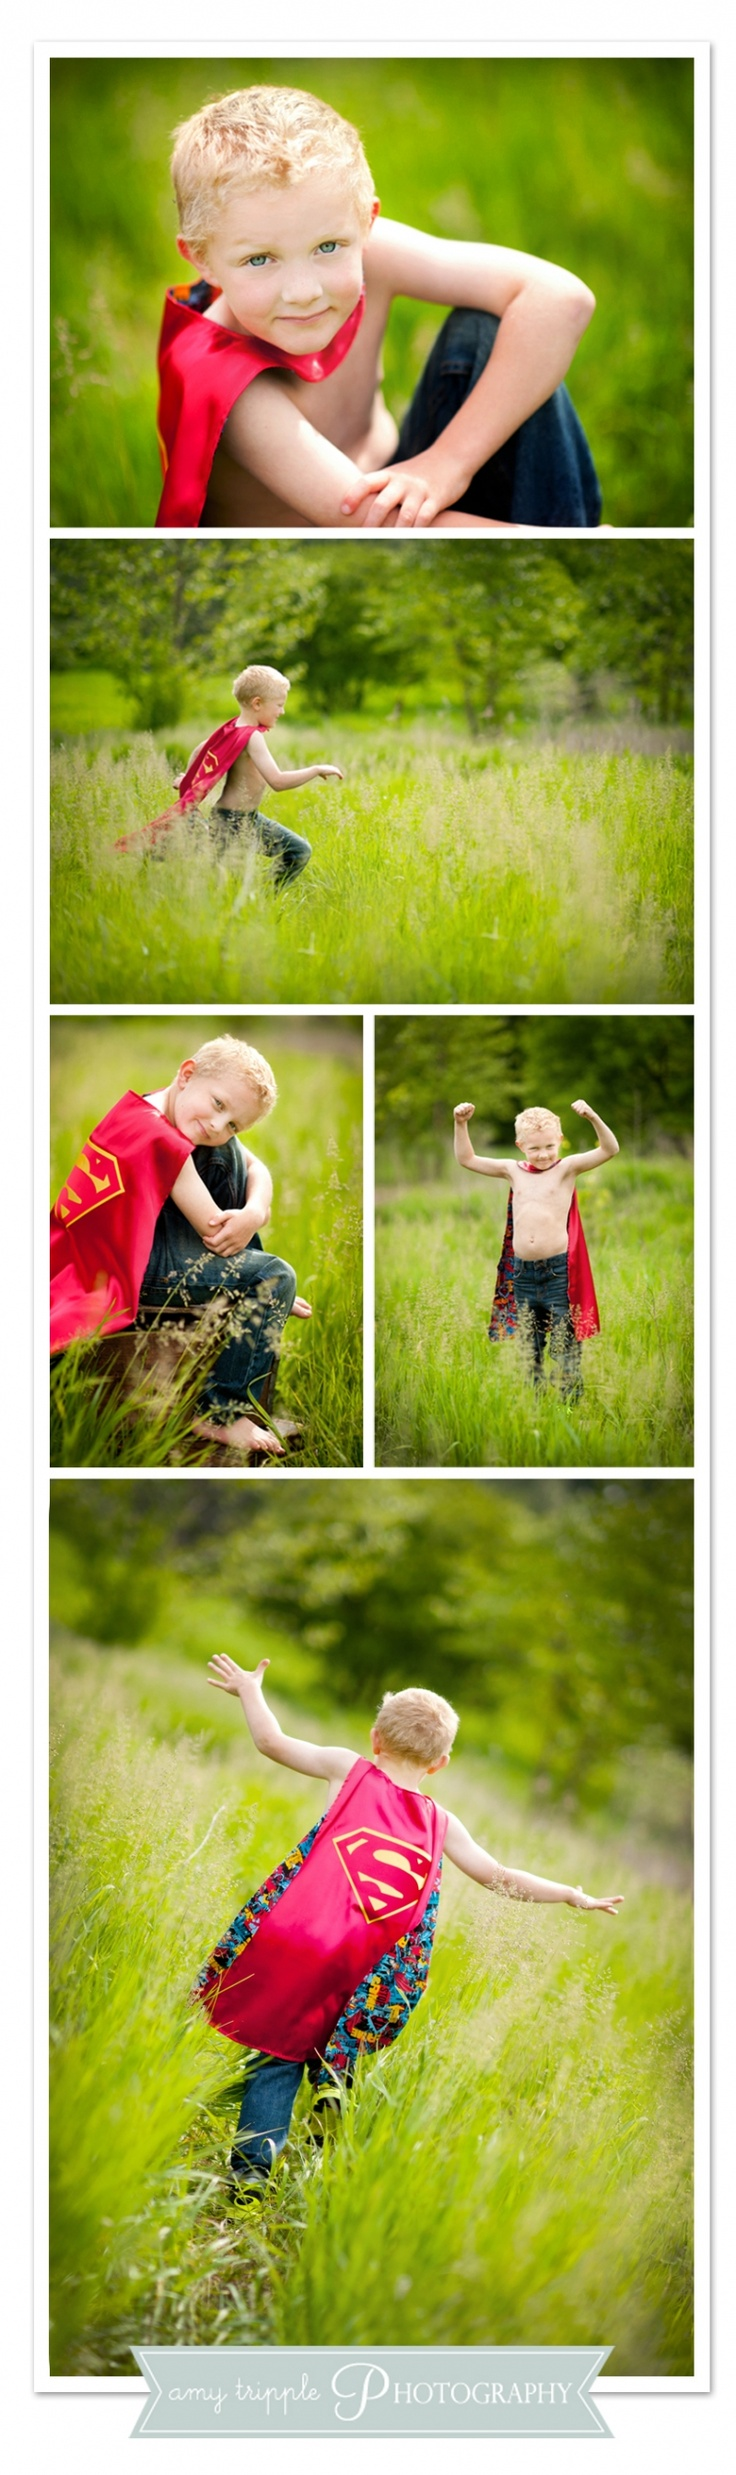 Superman photo sessions!!!     Amy Tripple Photography